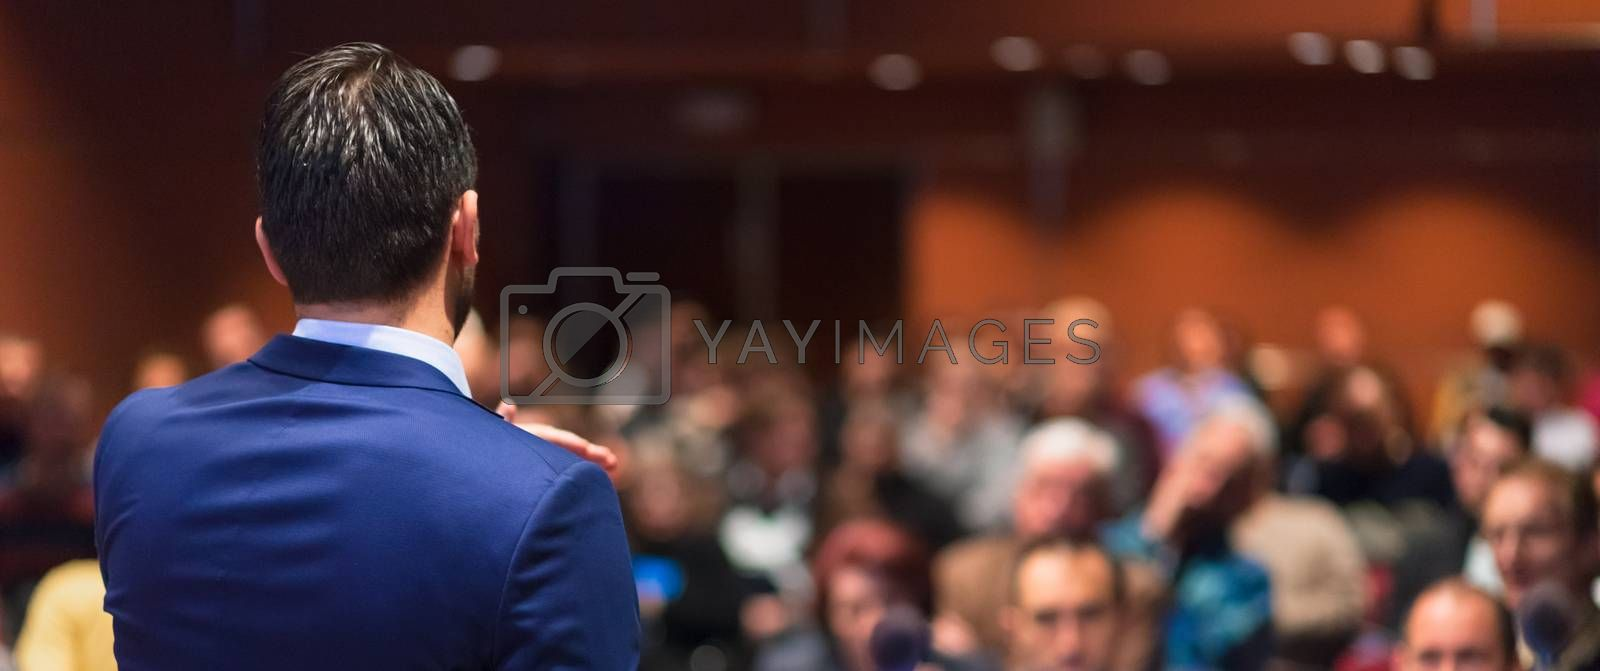 Rear view of speaker giving a talk on corporate Business Conference. Audience at the conference hall. Business and Entrepreneurship event. Panoramic composition.